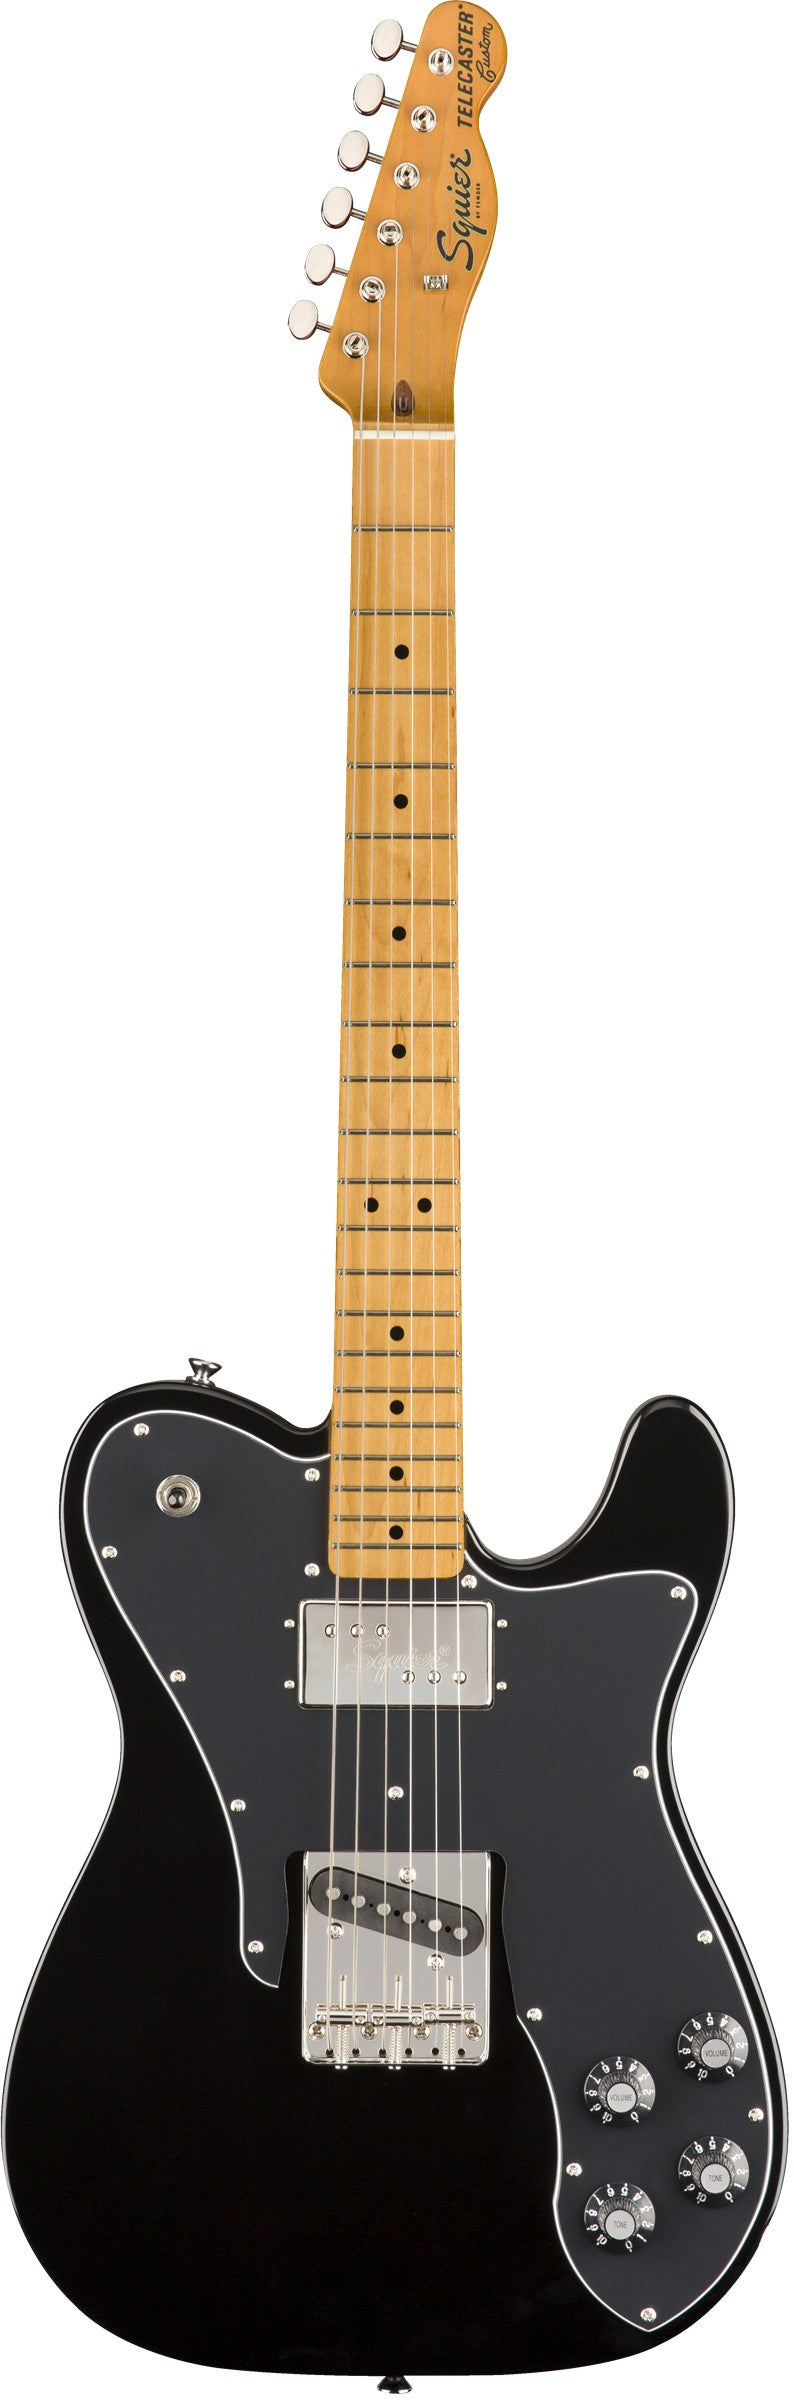 Squier Classic Vibe '70S Telecaster Custom Electric Guitar, Maple Fingerboard